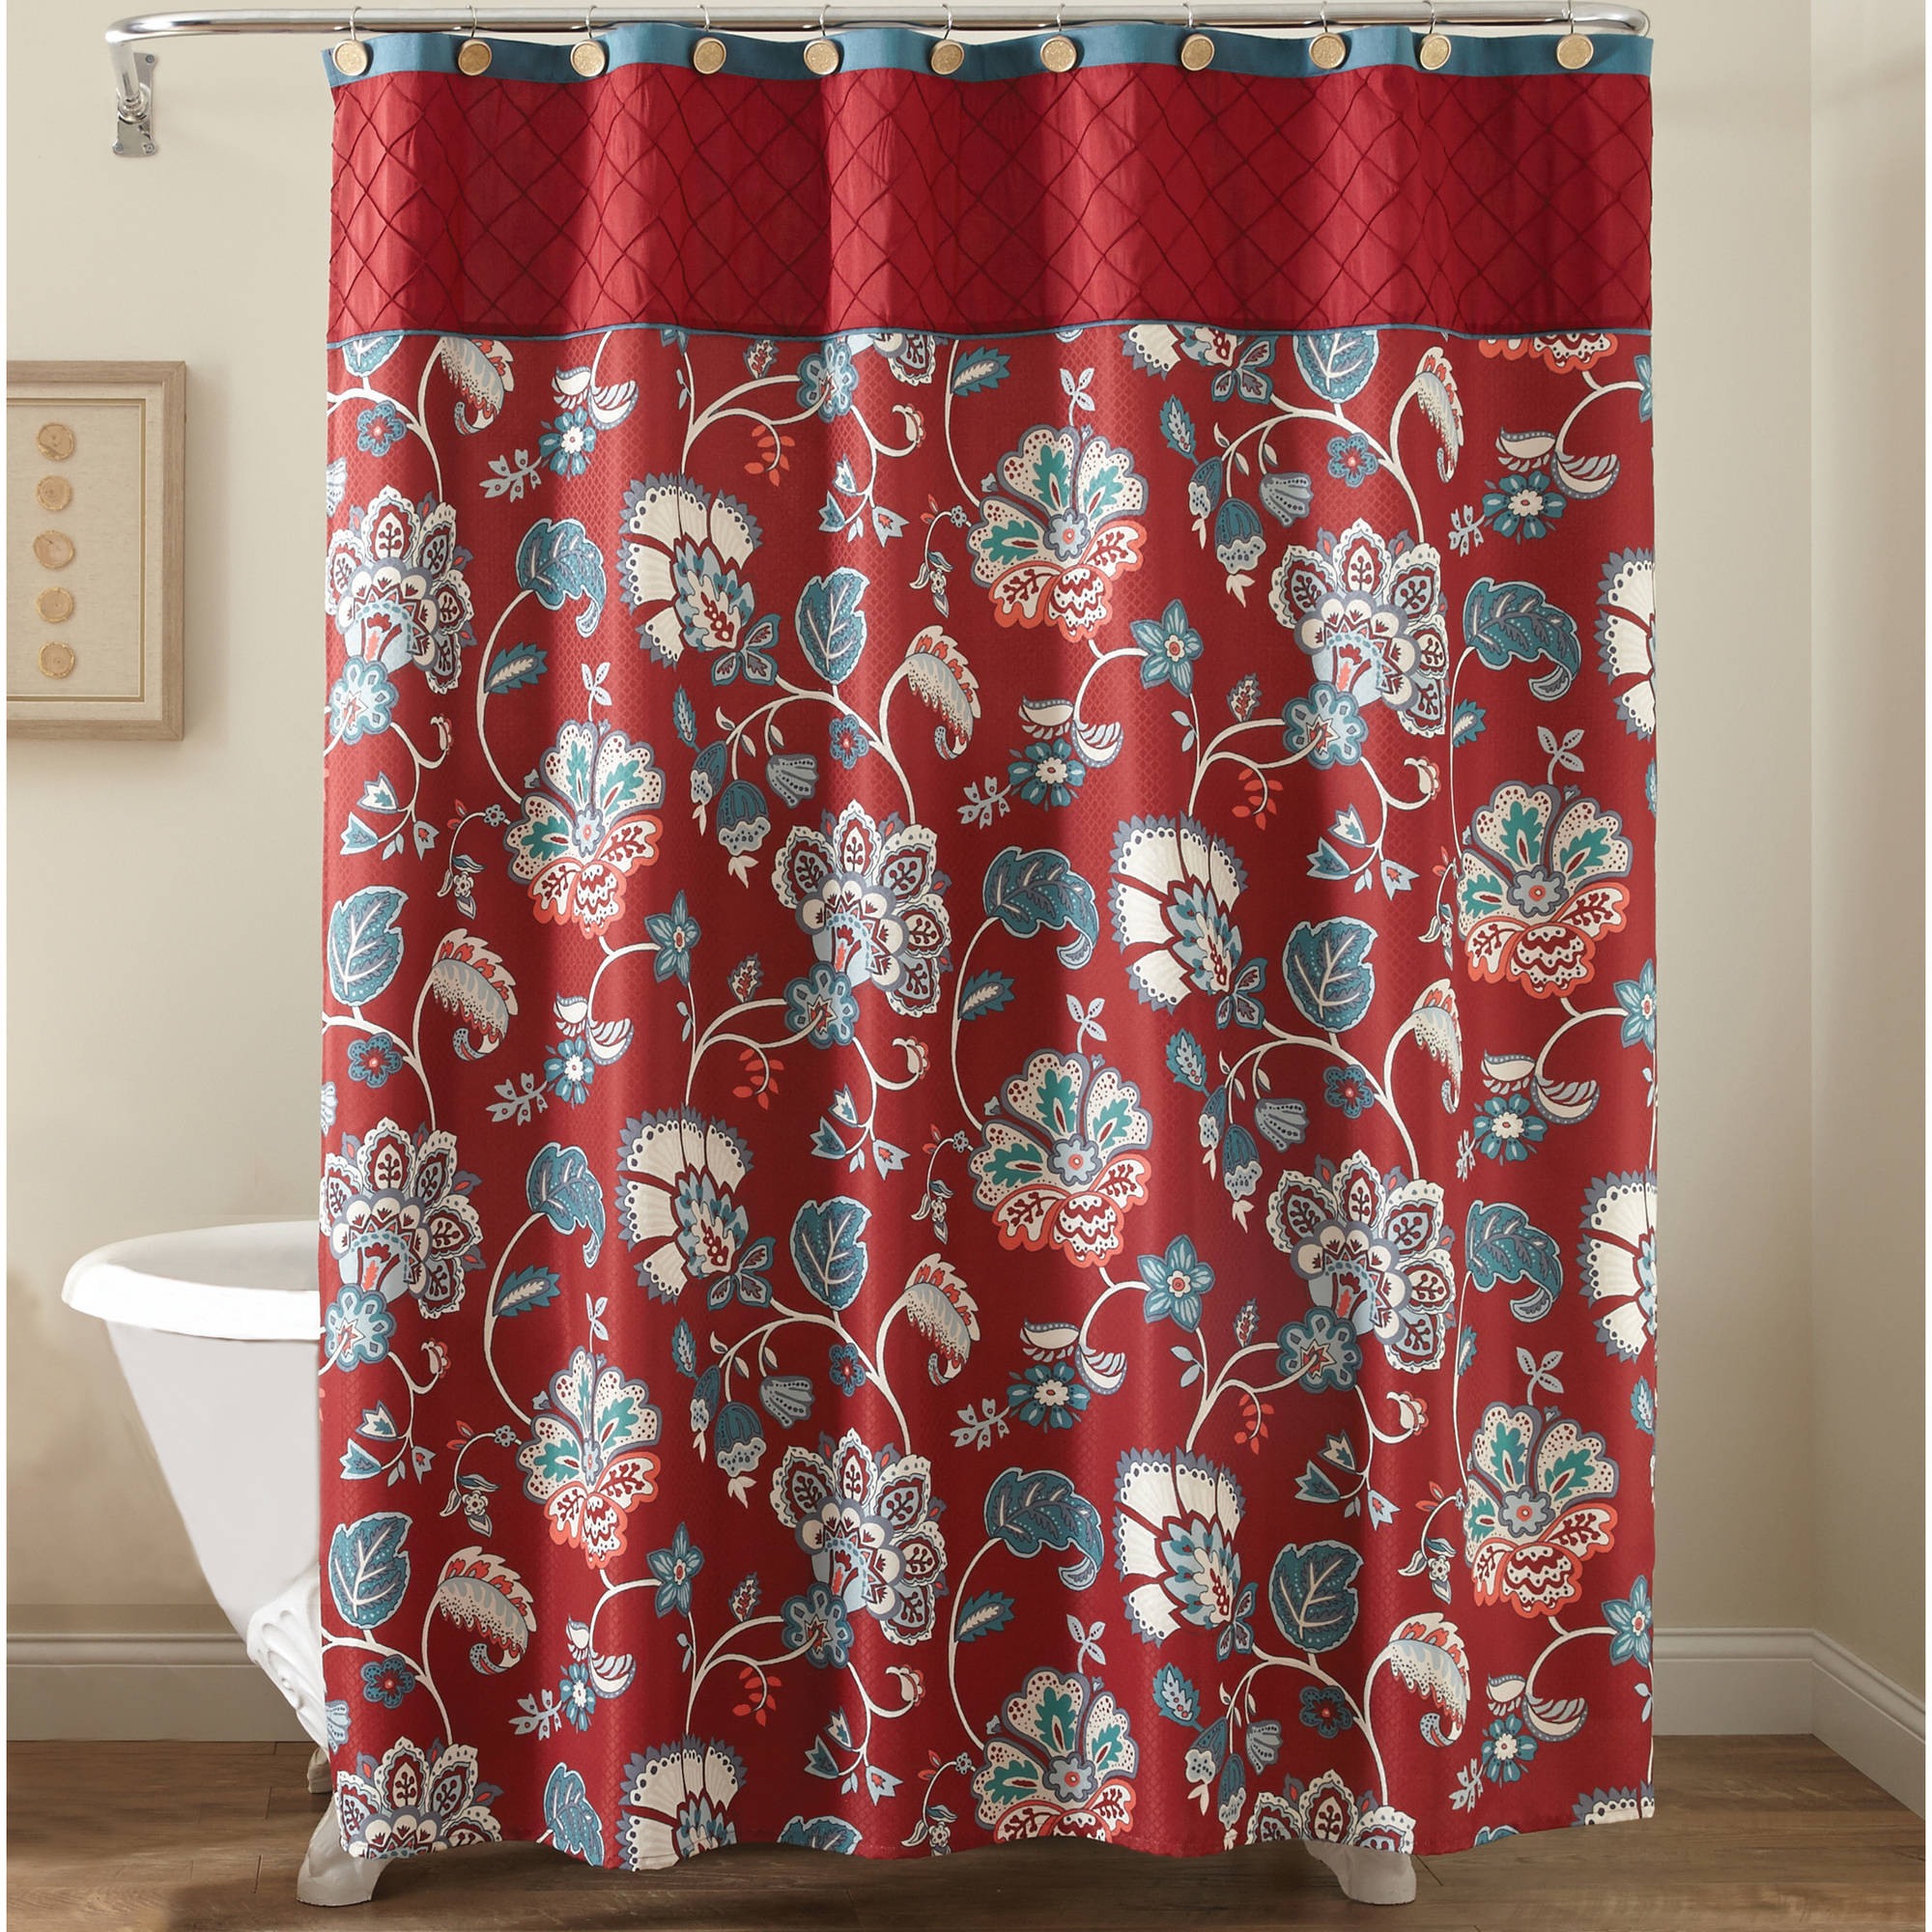 Delightful Better Homes And Gardens Red Jacobean Fabric Shower Curtain